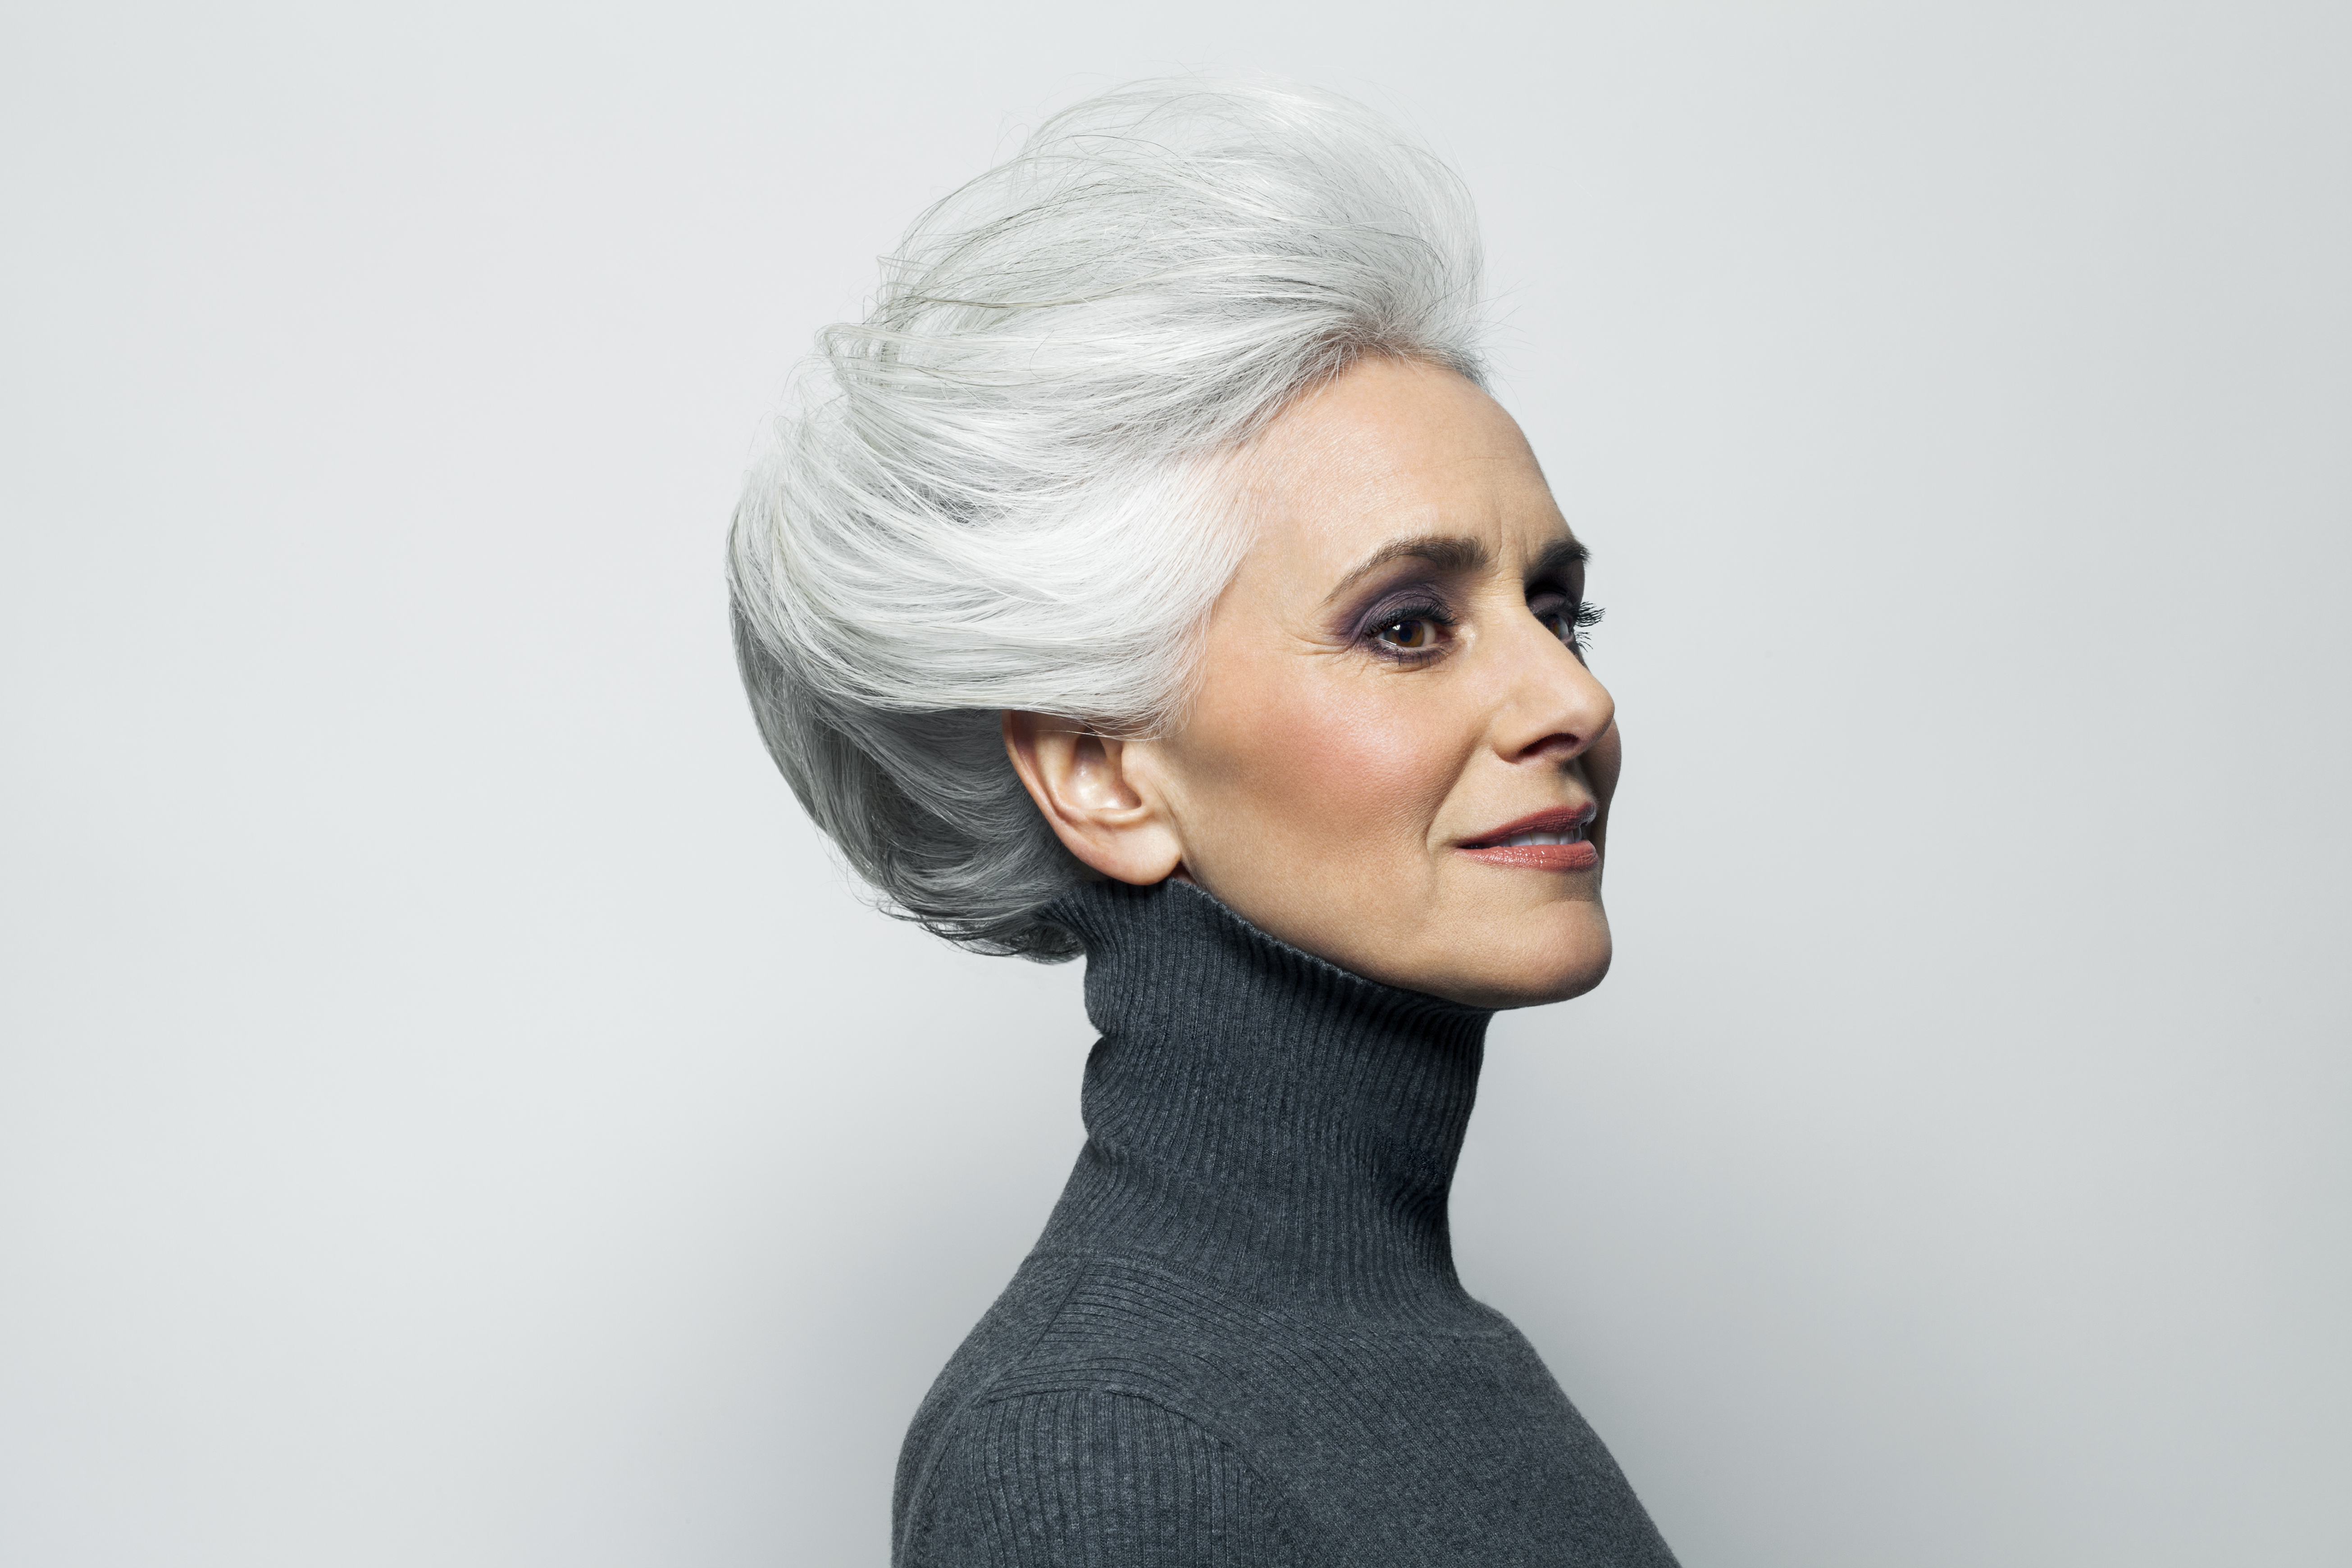 Grey haired woman in grey turtleneck sweater.